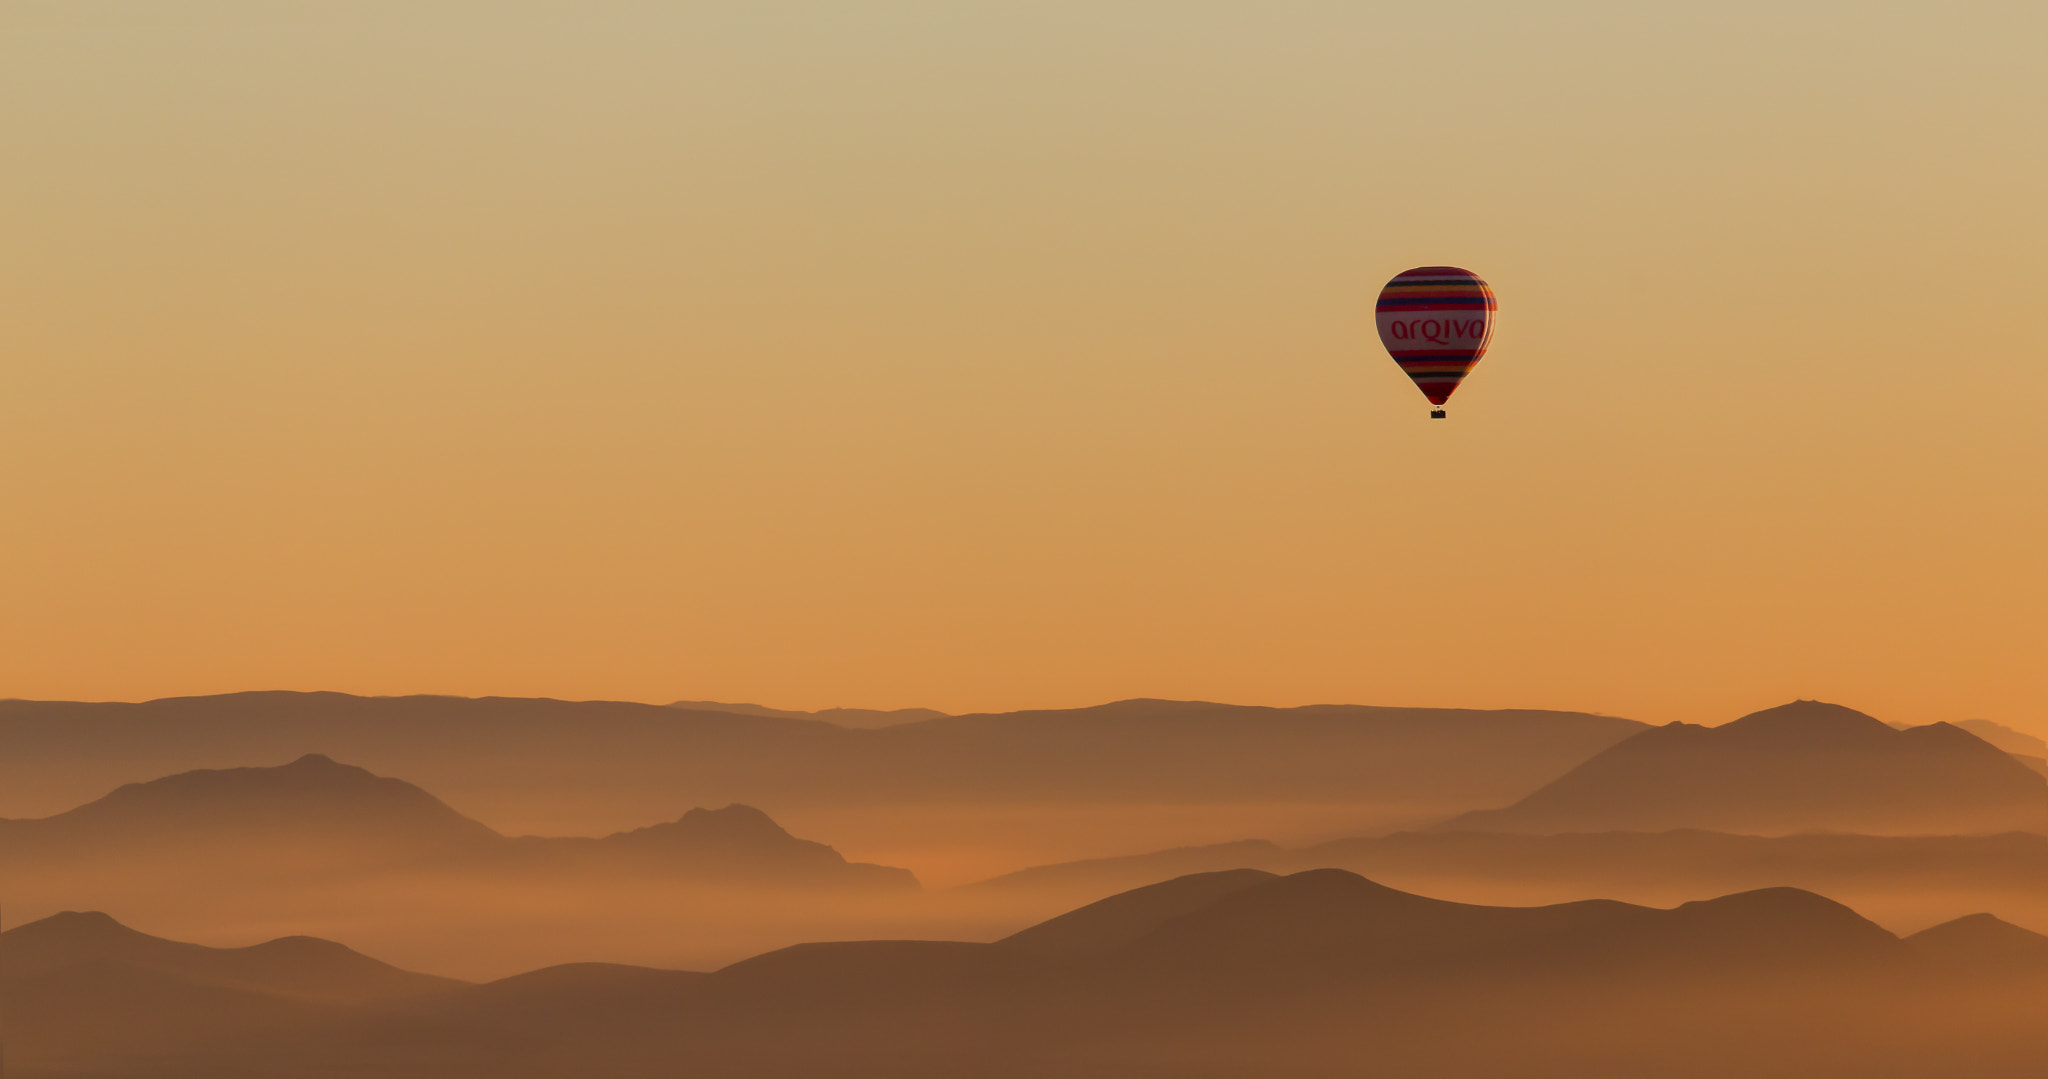 Photograph Balloon Flight IV by Daniel Hannabuss on 500px